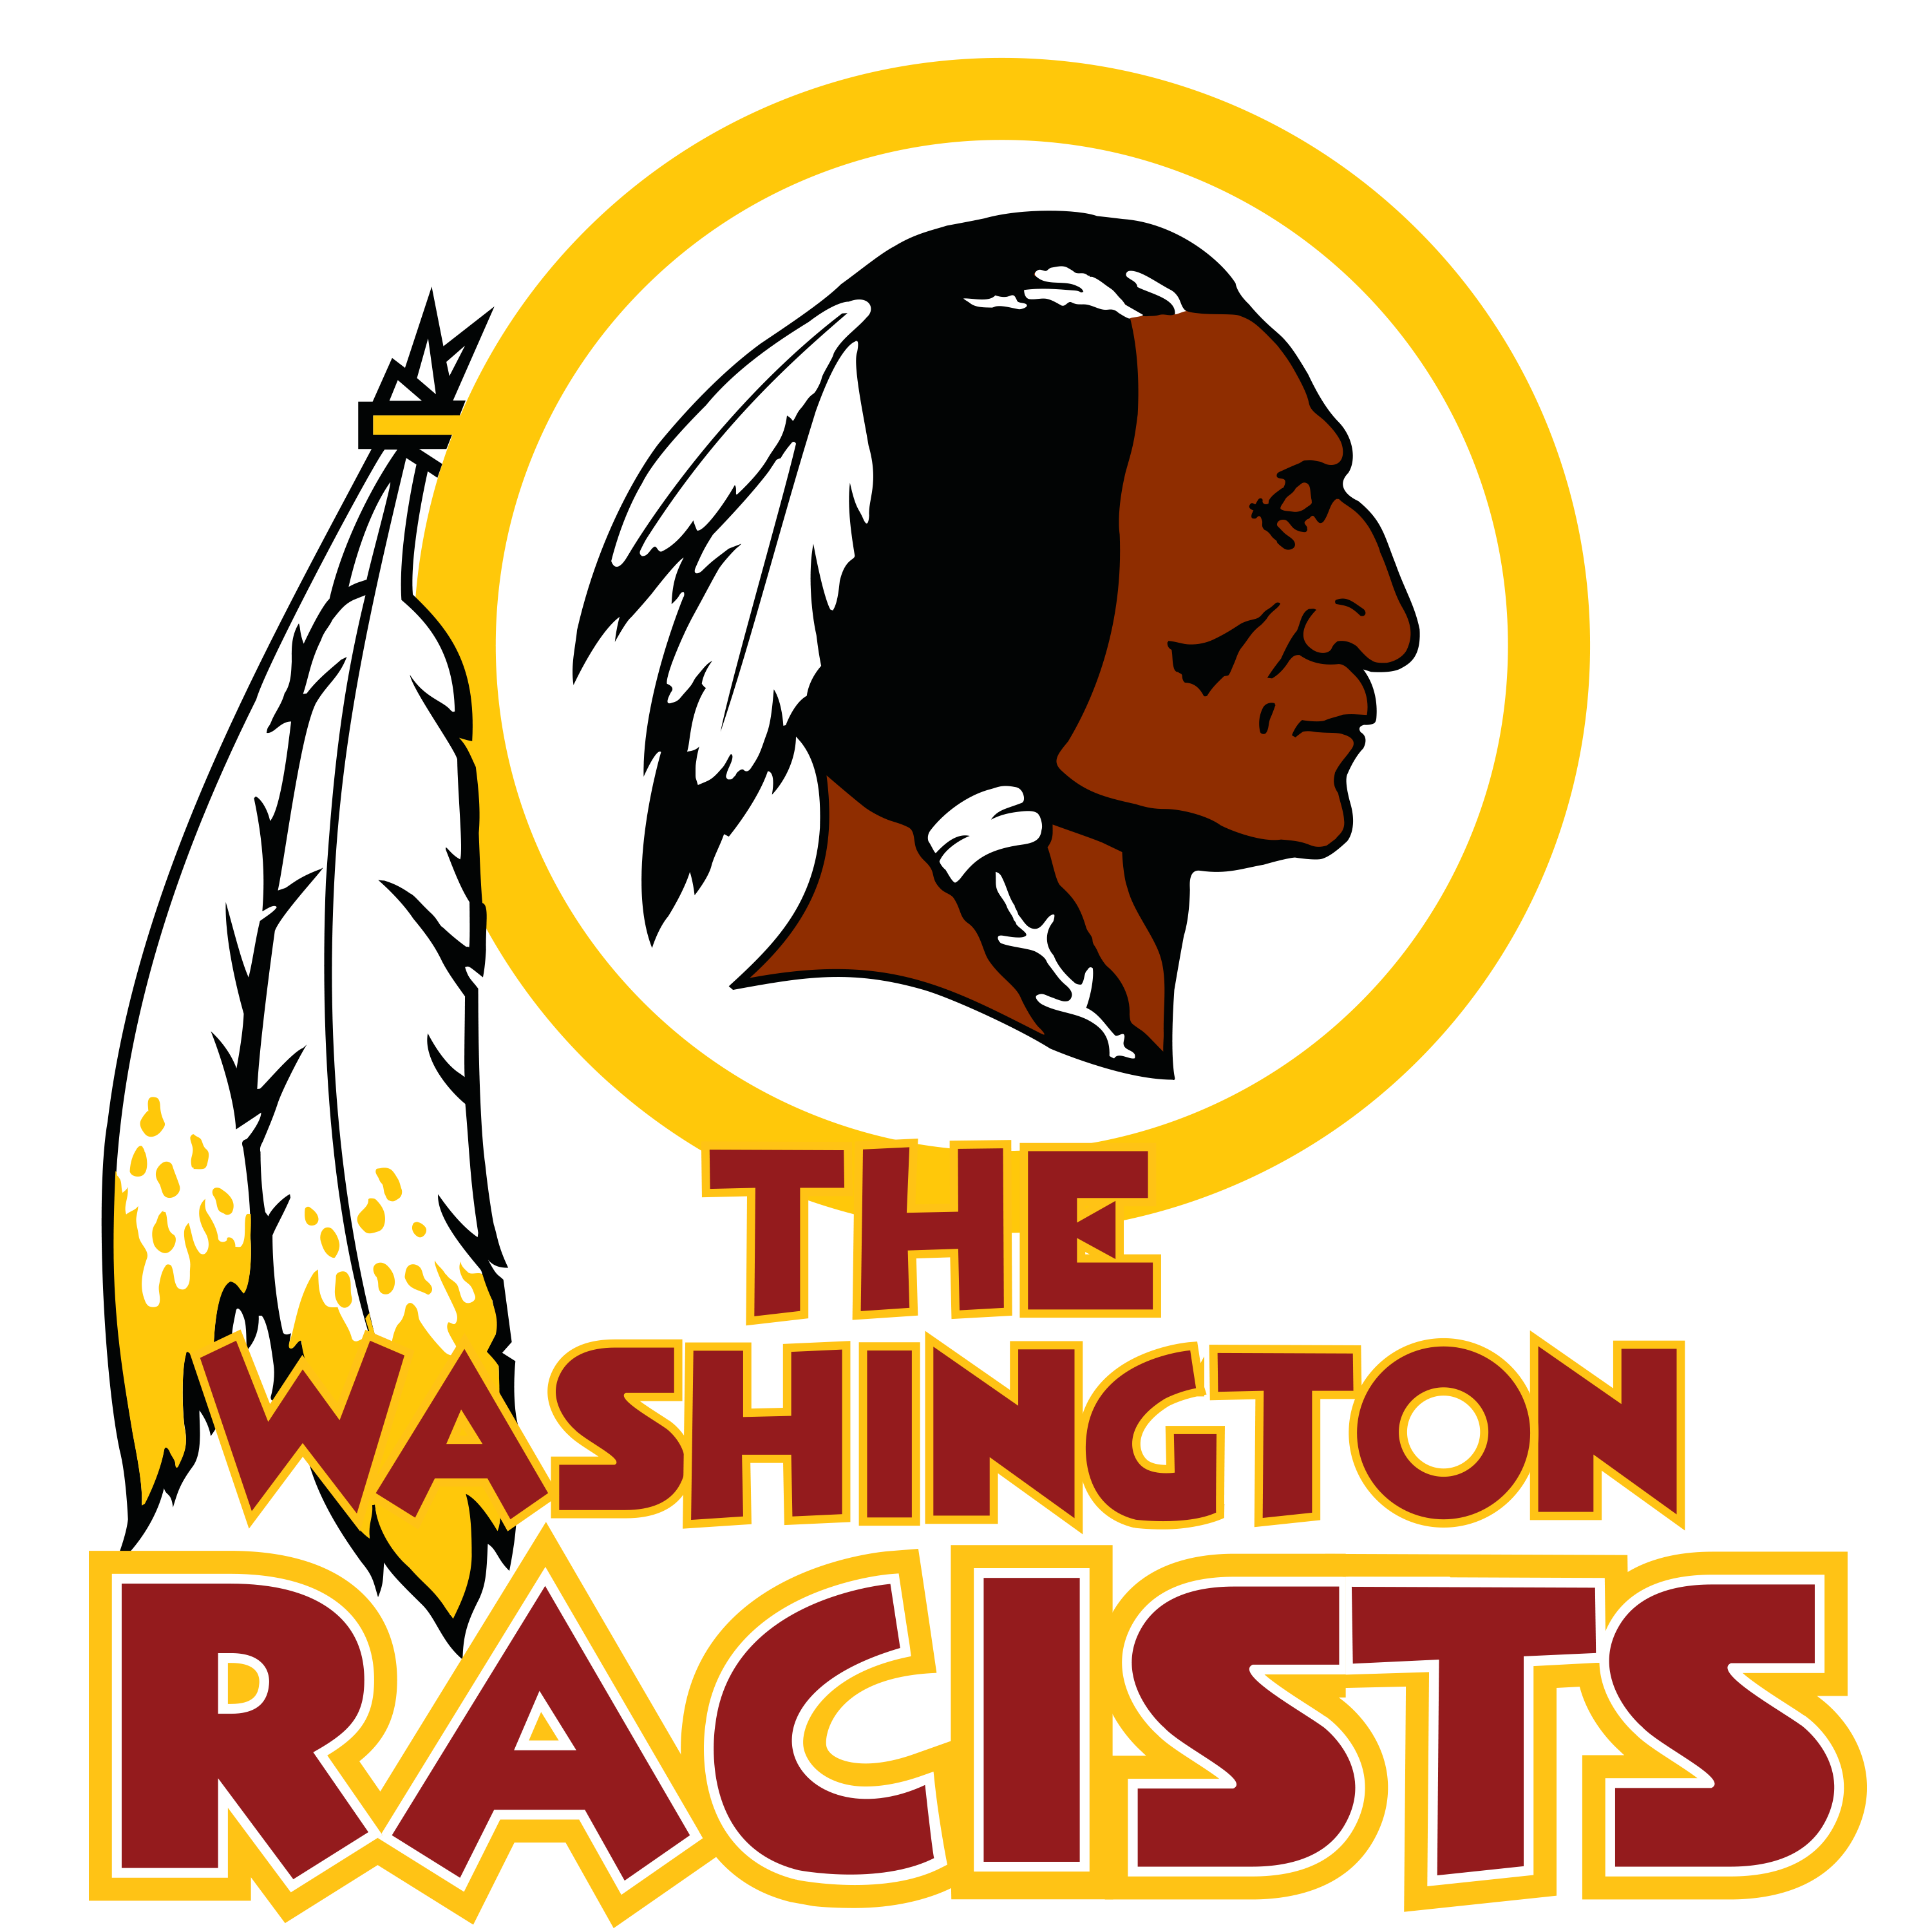 Washington Redskins Free Png Image PNG Image